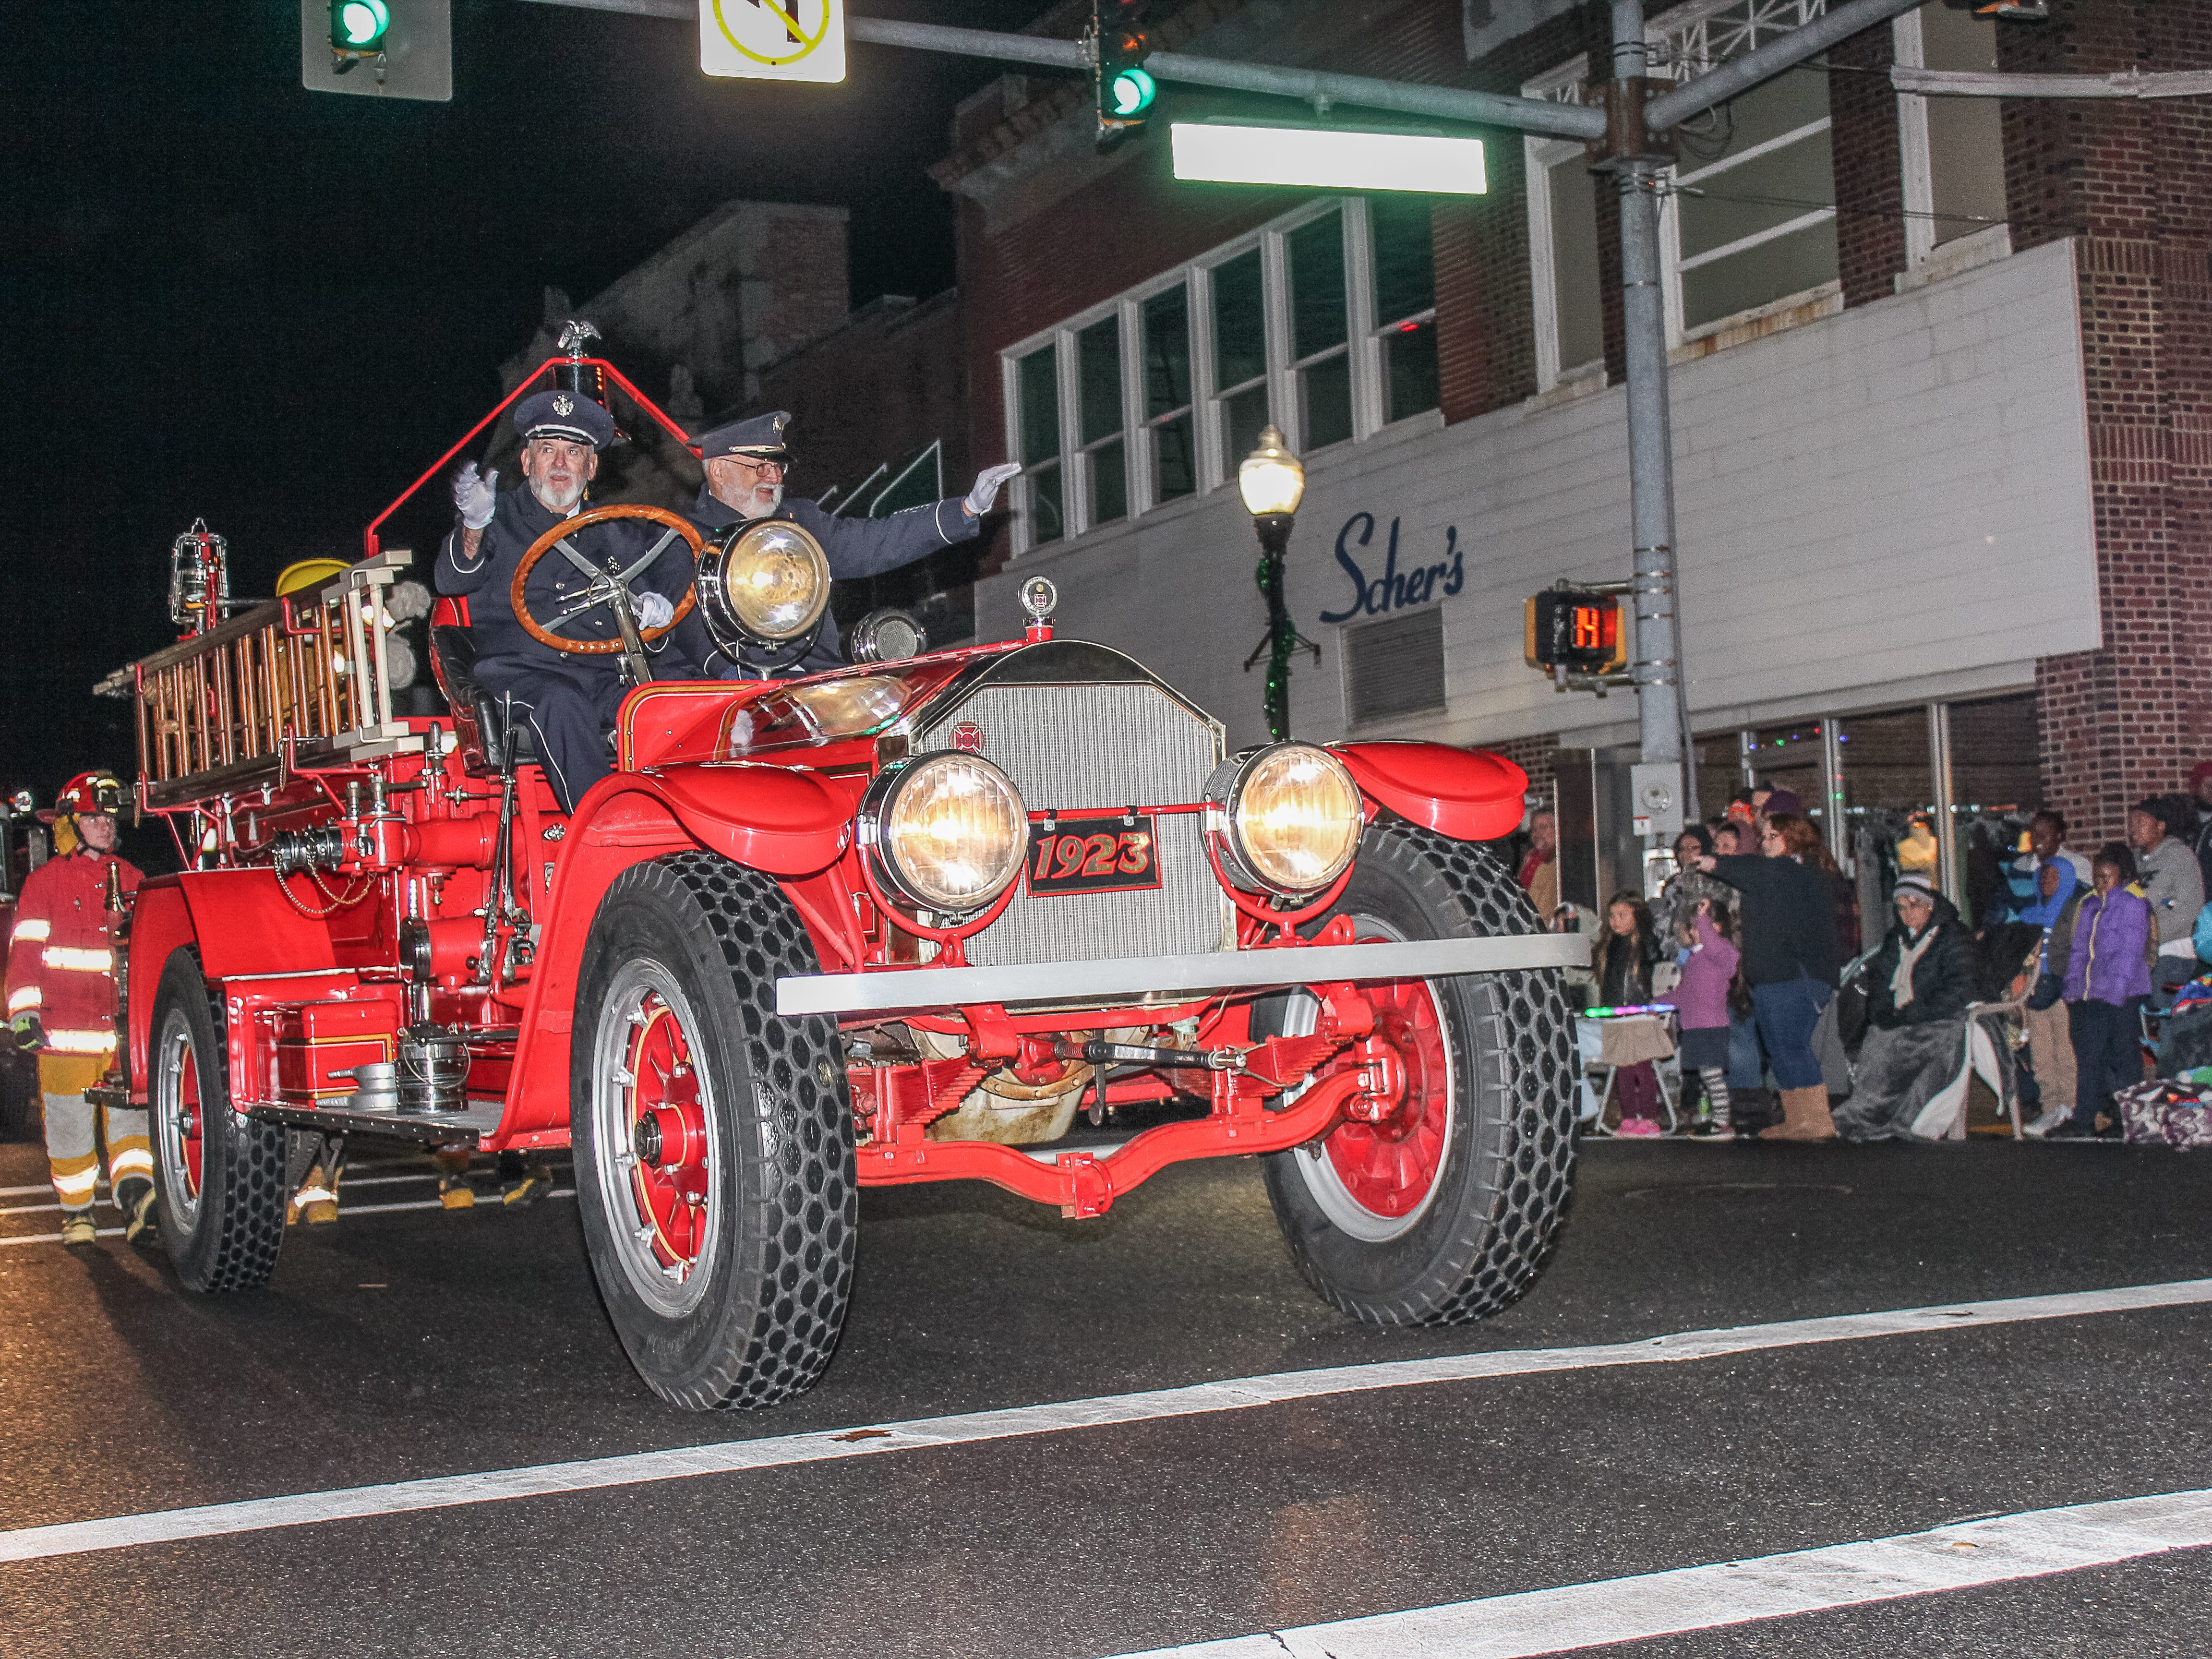 A vintage Pocomoke City Fire Company truck takes part in the annual Pocomoke Christmas Parade on Nov. 26. Several hundred peopled turned out to watch the Eastern Shore tradition despite rain.